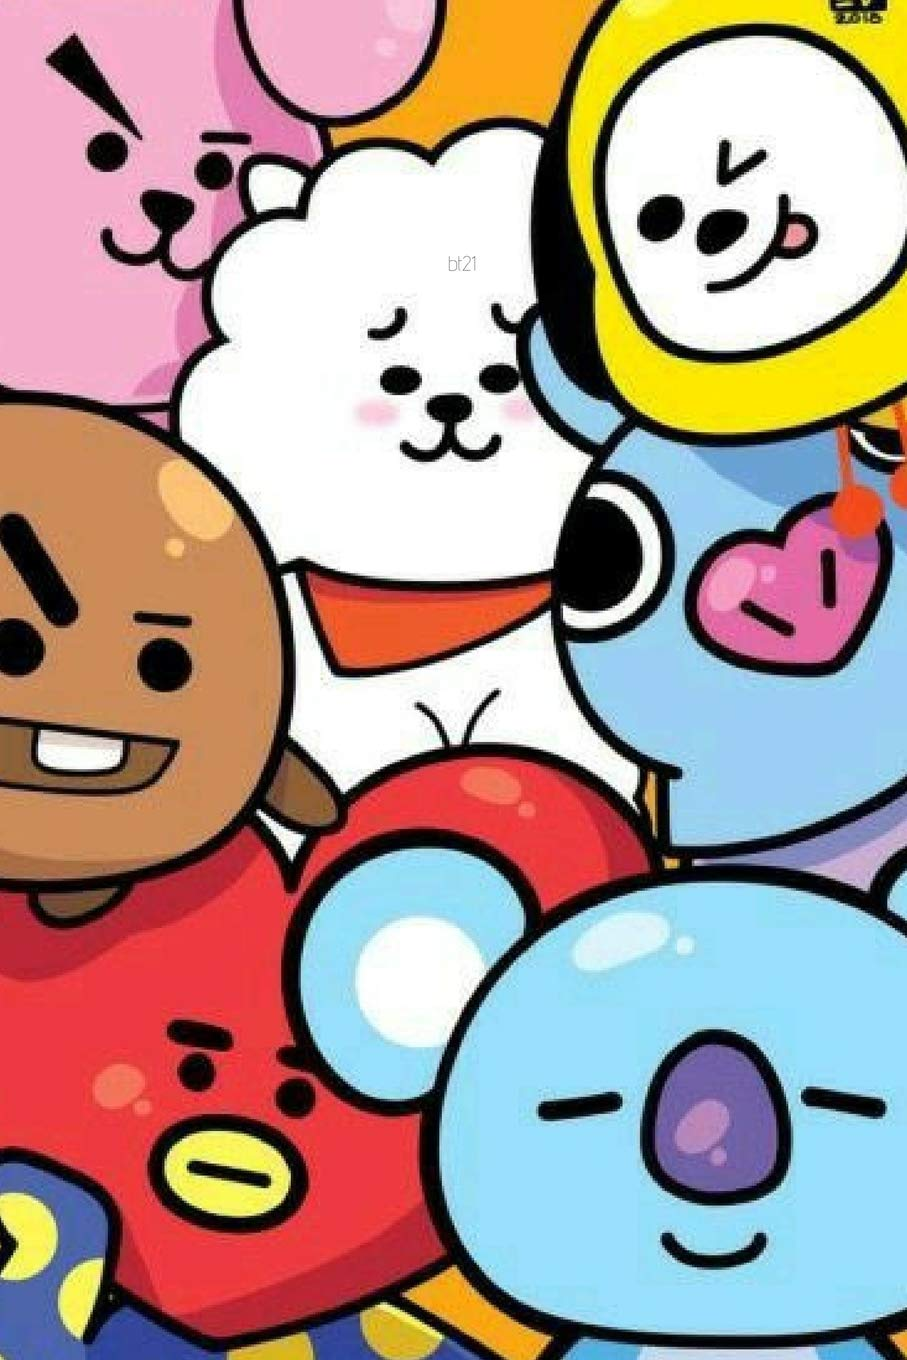 KPOP CUTE BT21 BTS CHARACTER Notebook FOR ARMYs And KNETz  College Ruled Composition School And Personal Journal 6x9in For Girls Students And Fans